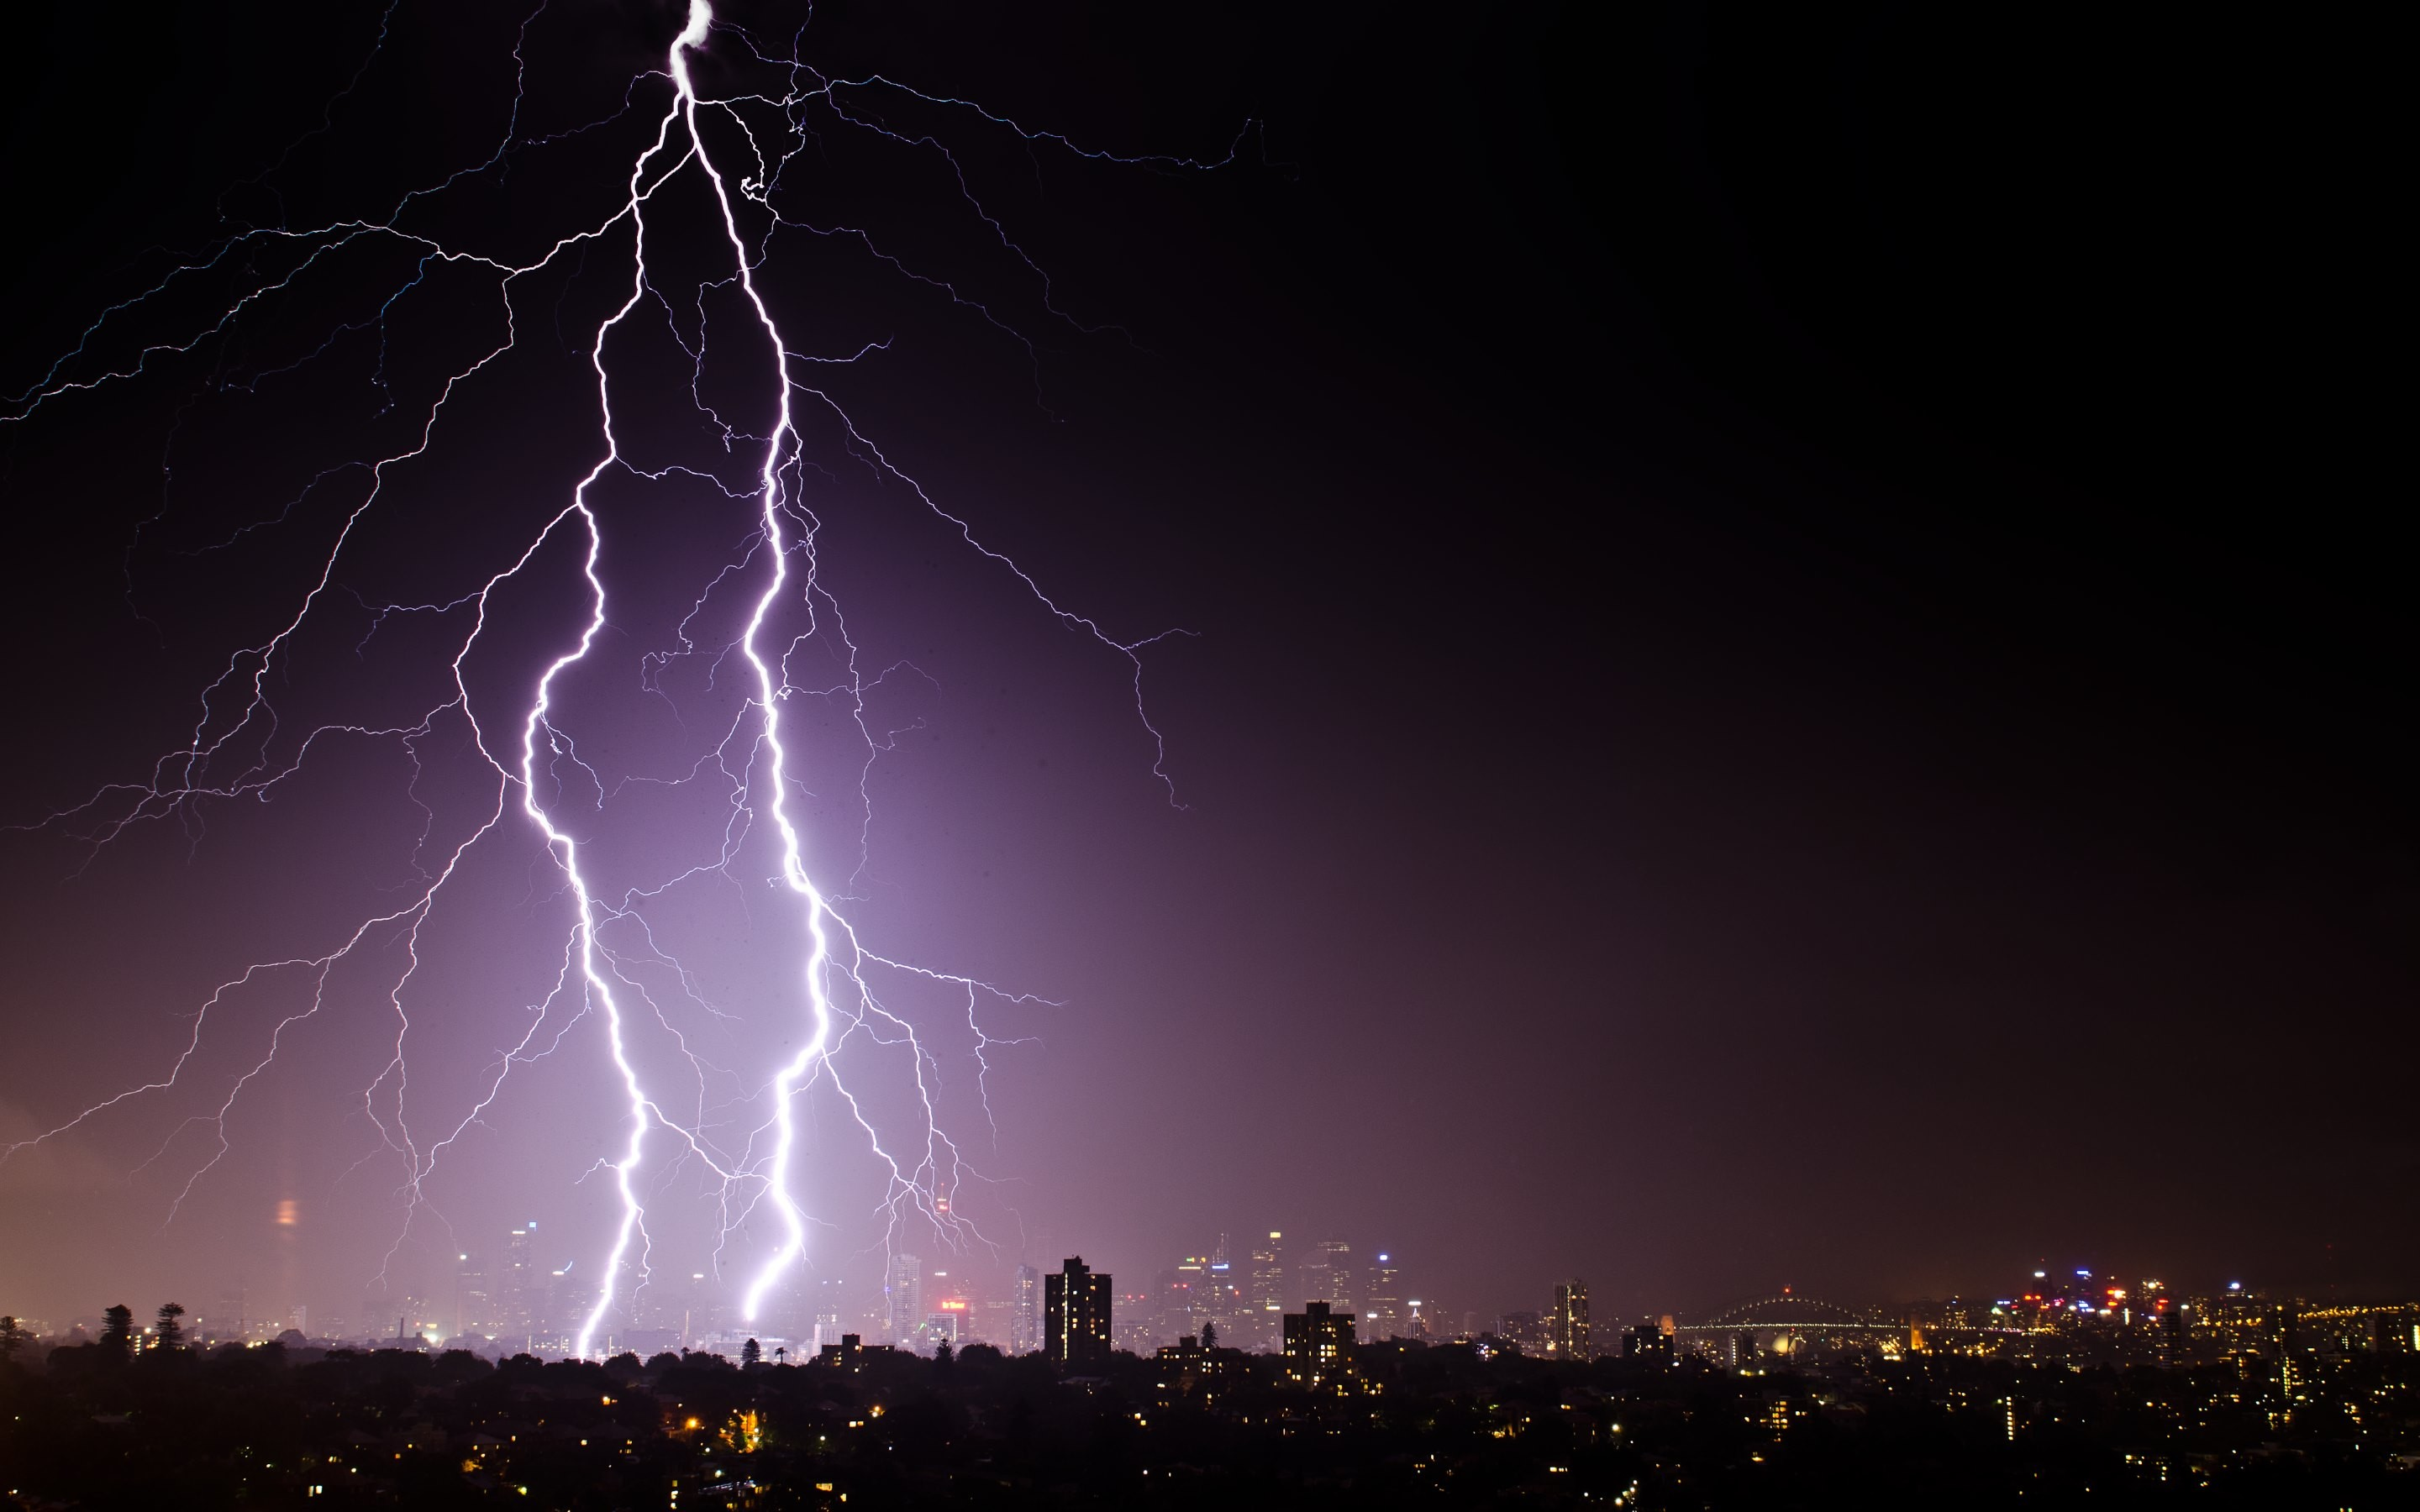 Lightning and Thunder in Sydney HD Wallpapers. 4K Wallpapers